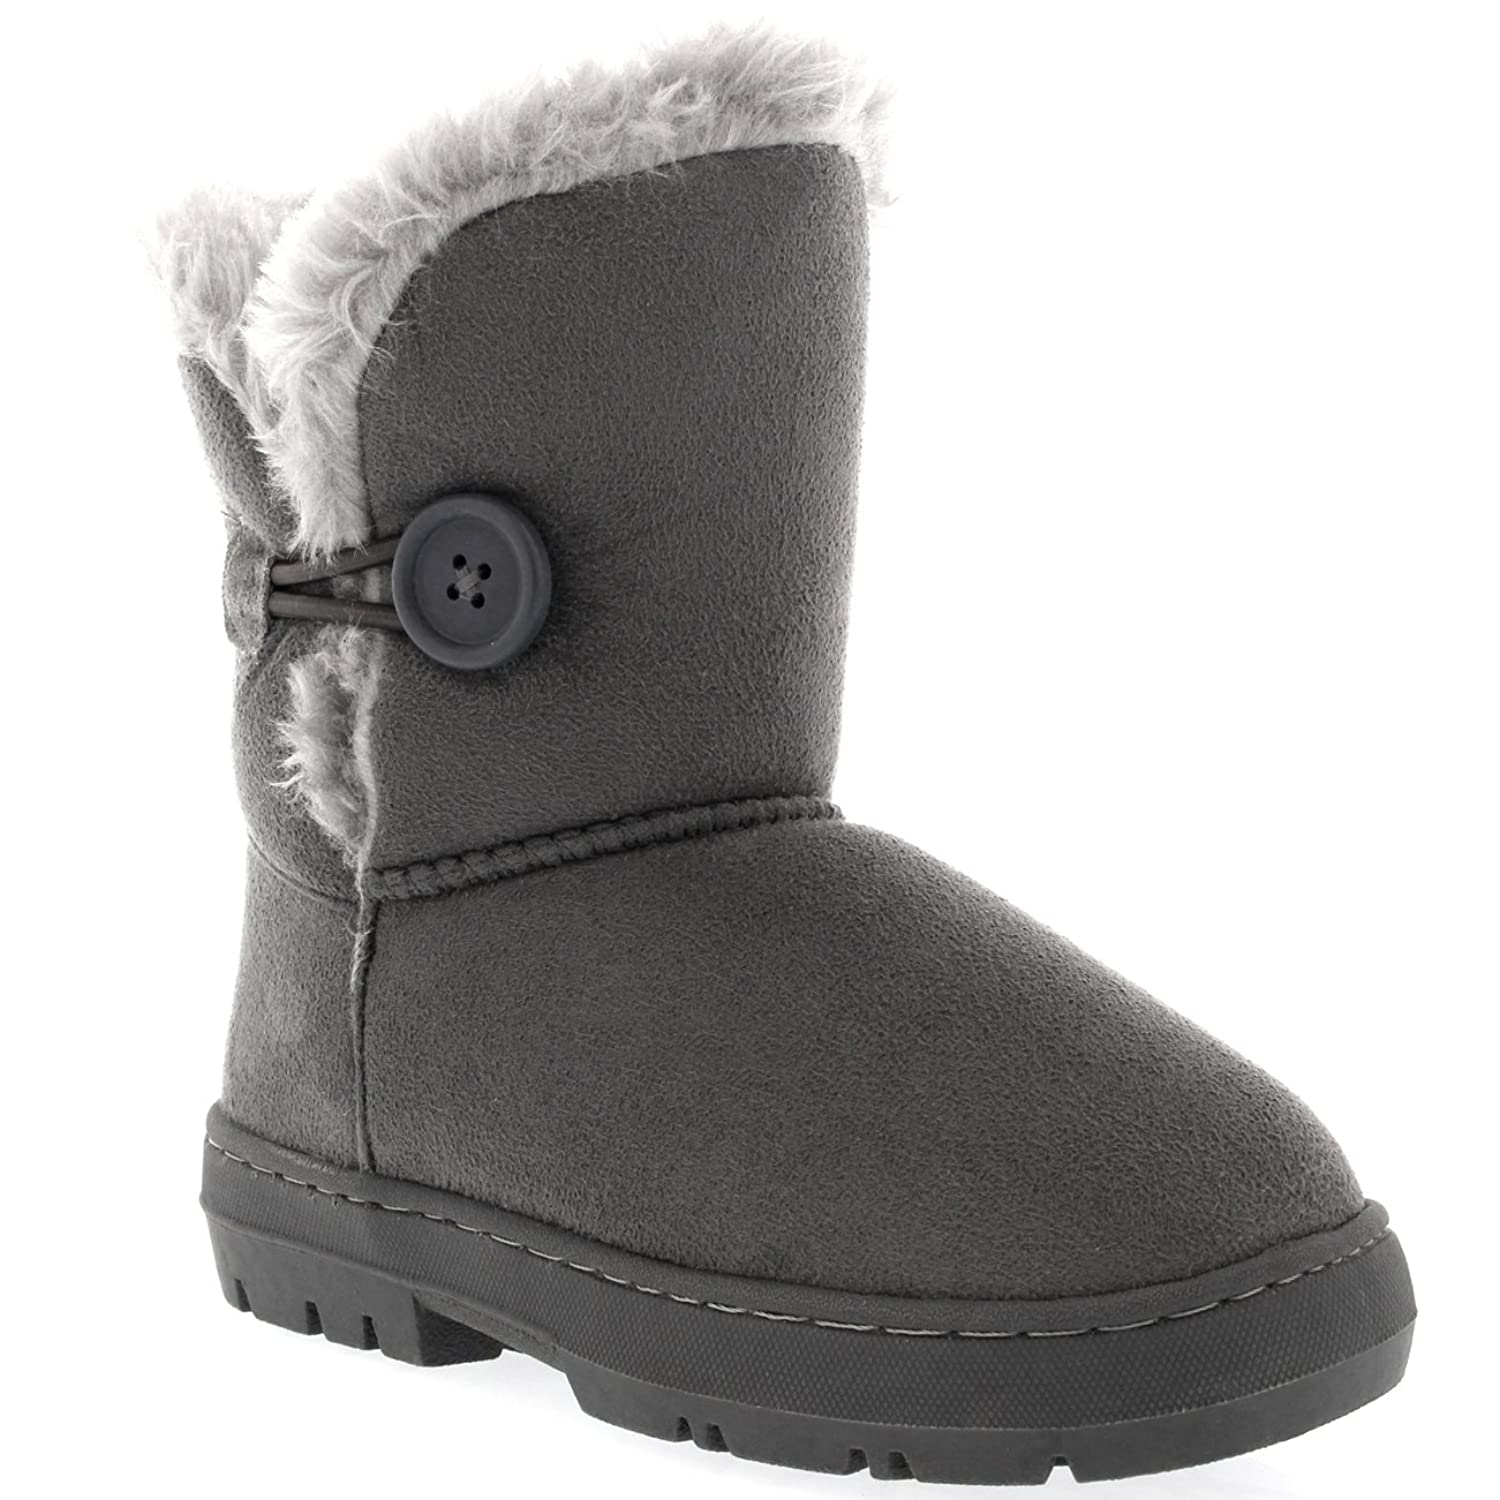 Kids Girls Button Winter Fur Lined Snow Rain Cosy Casual Warm Boots:  Amazon.ca: Shoes & Handbags